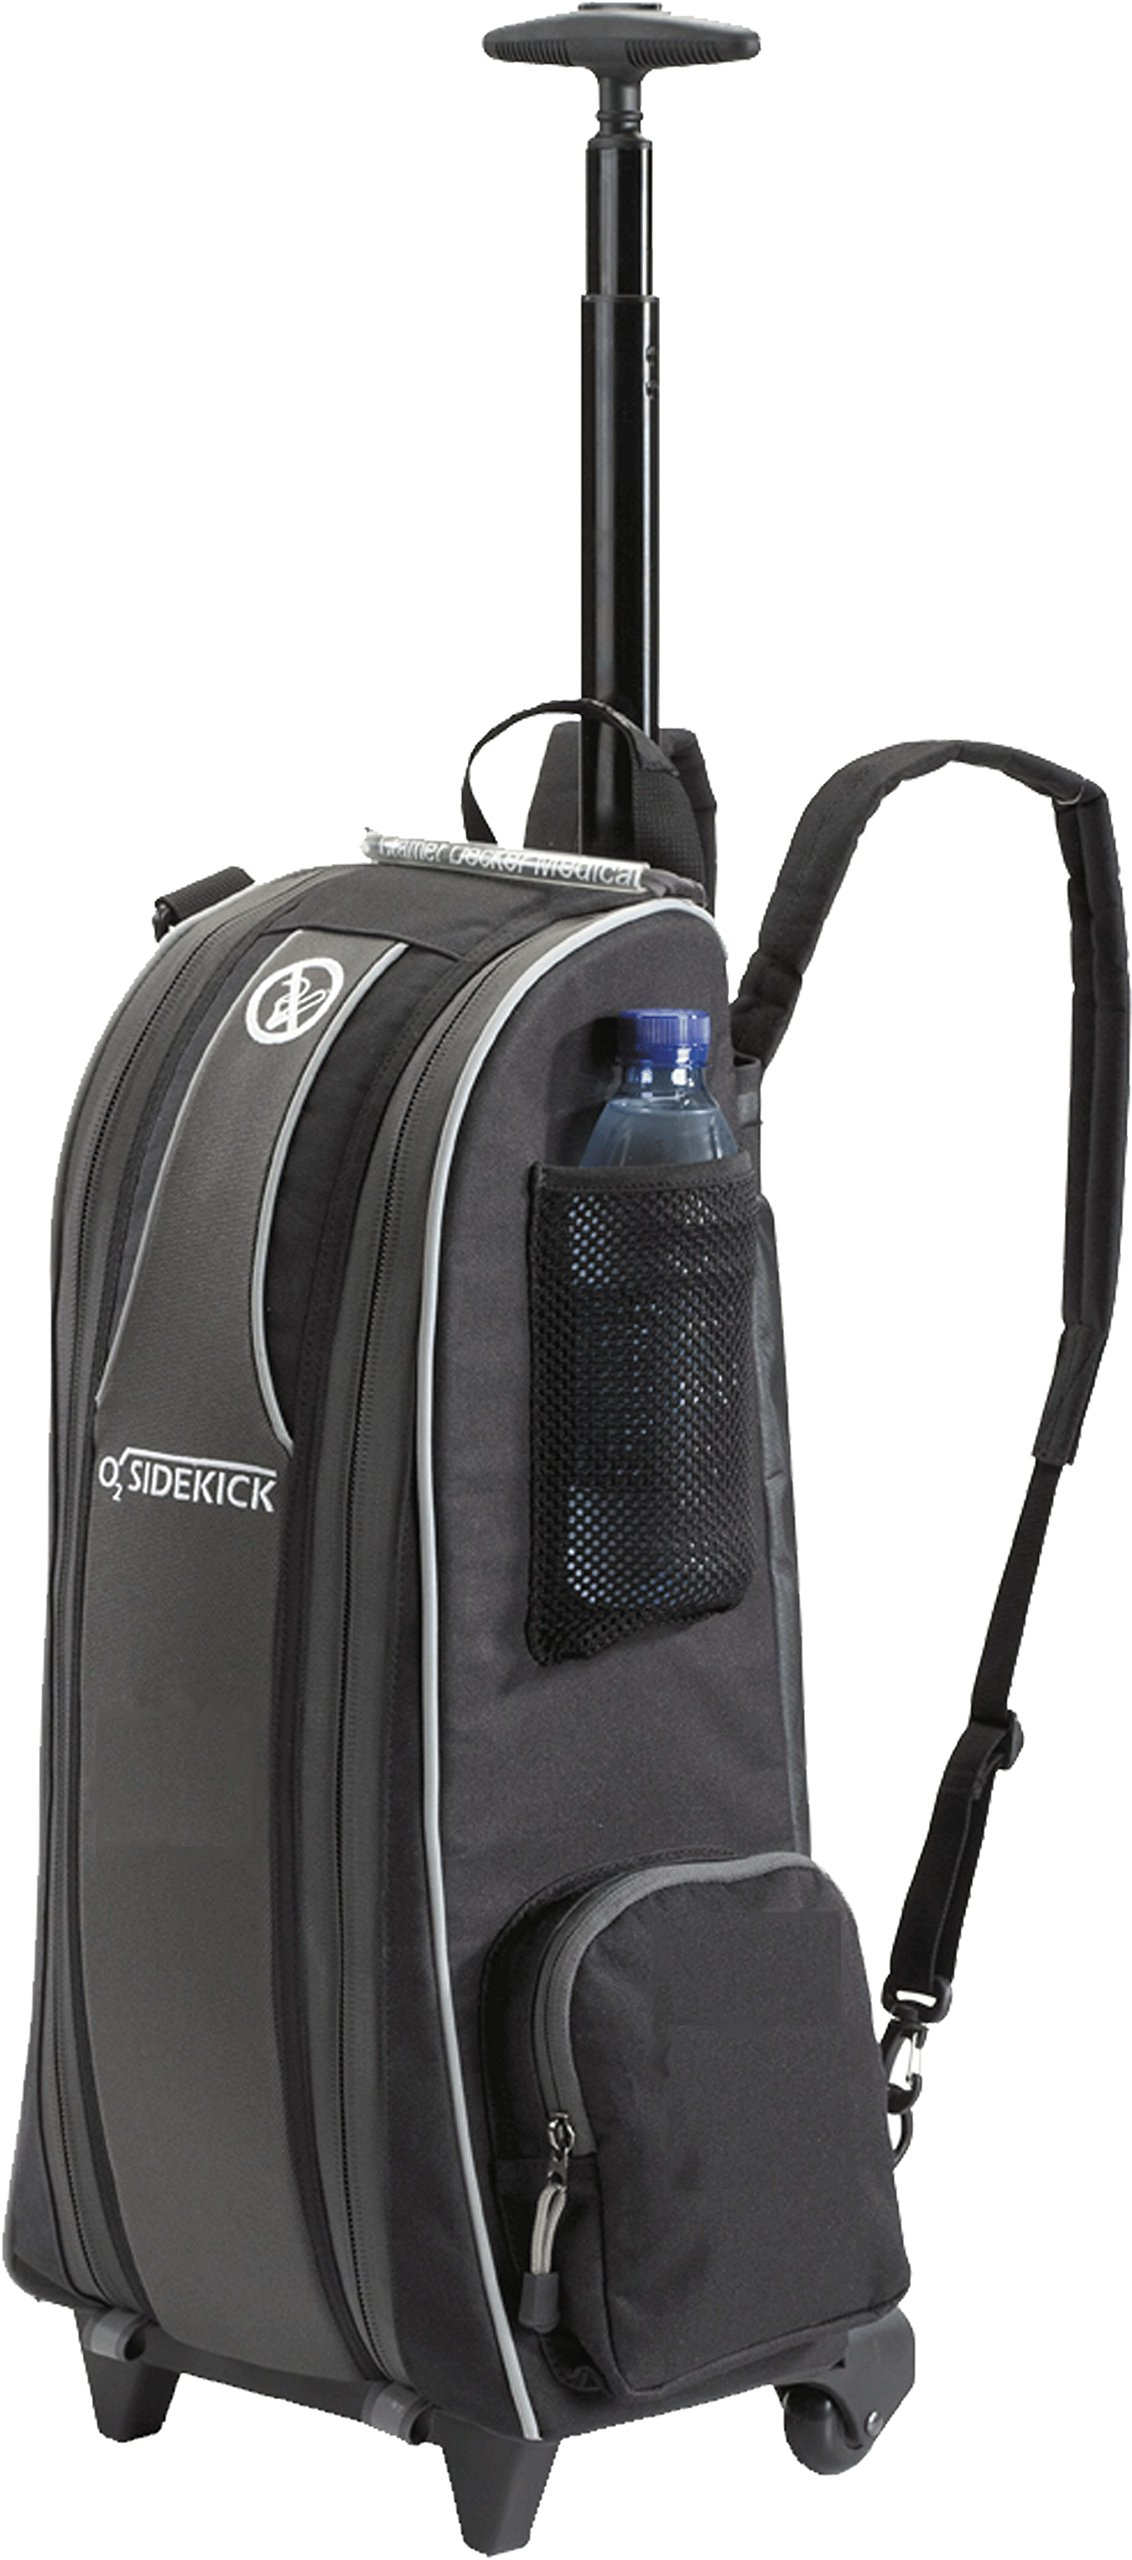 Amazon Drive Medical OP 150T Oxygen Cylinder Carry